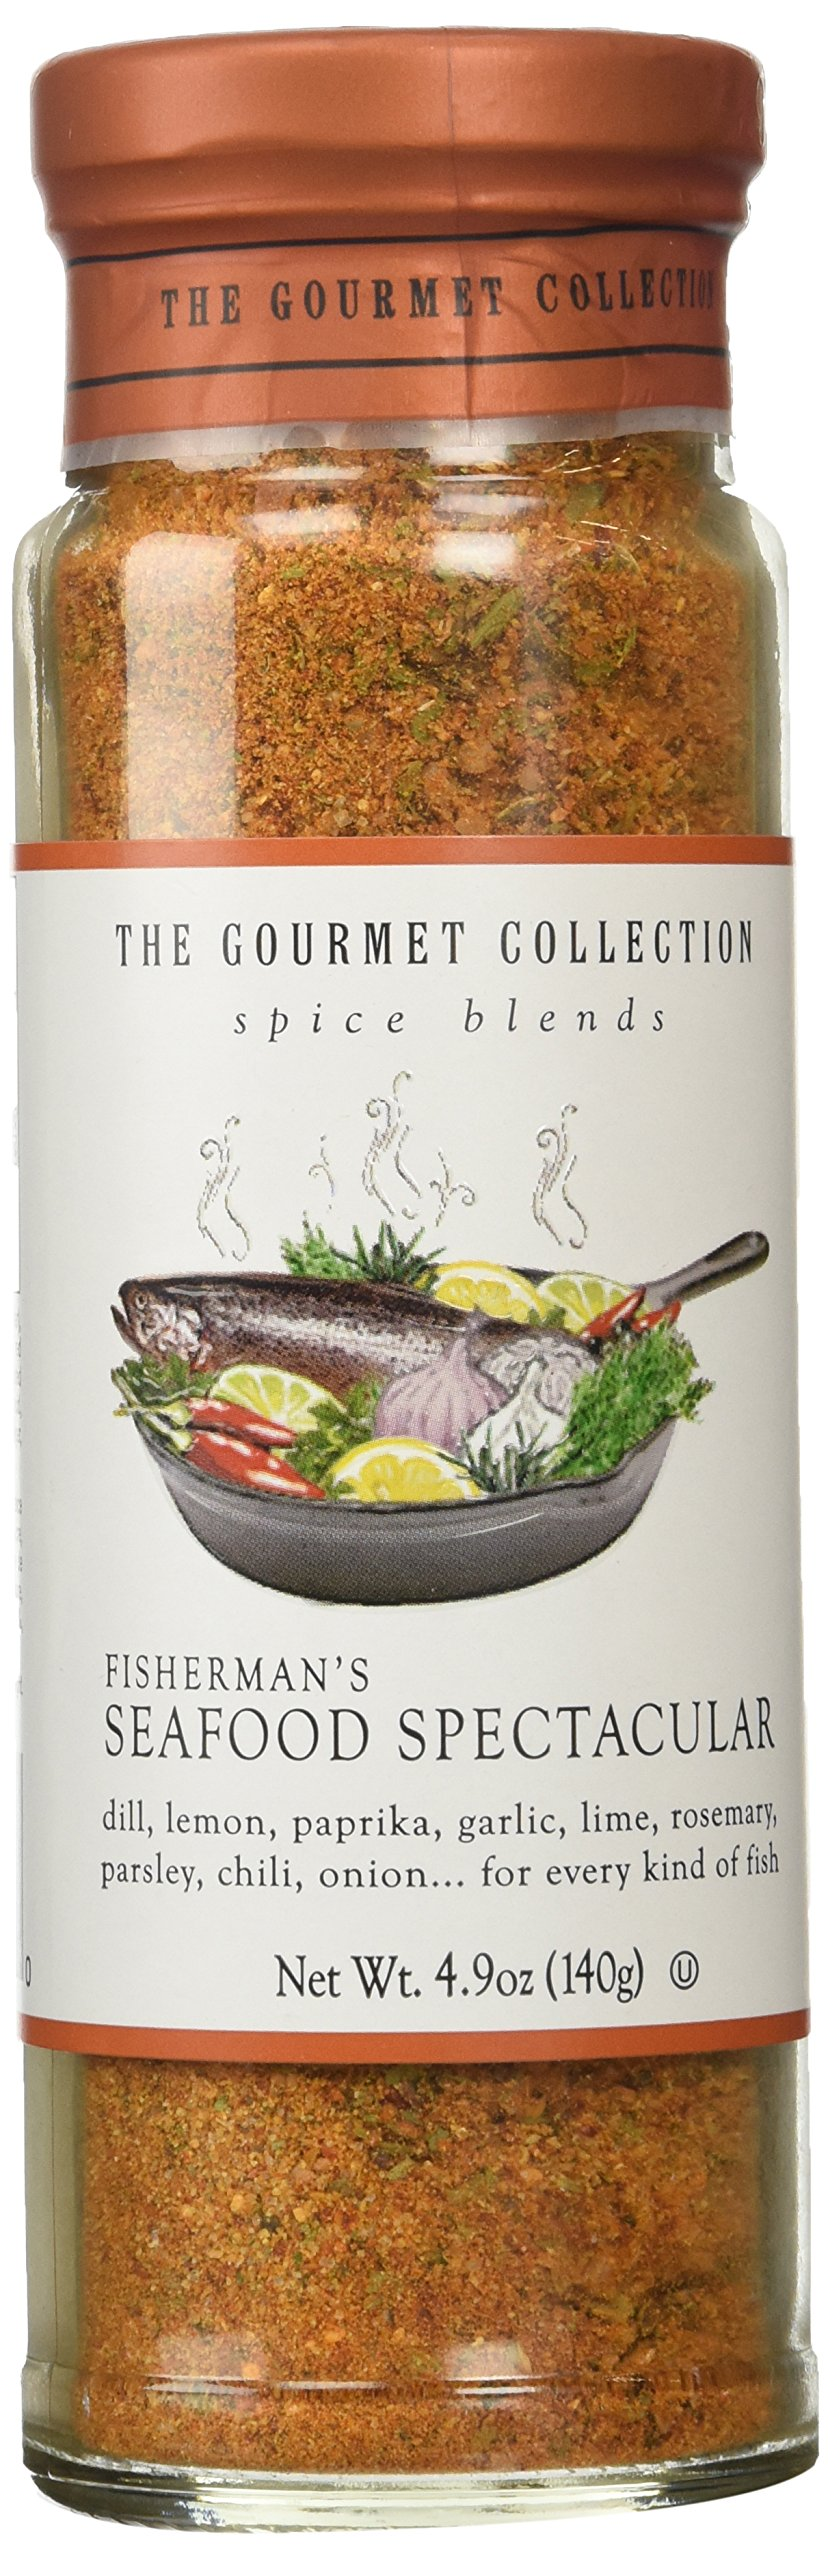 The Gourmet Collection Spice Blends, Fisherman's Seafood Spectacular